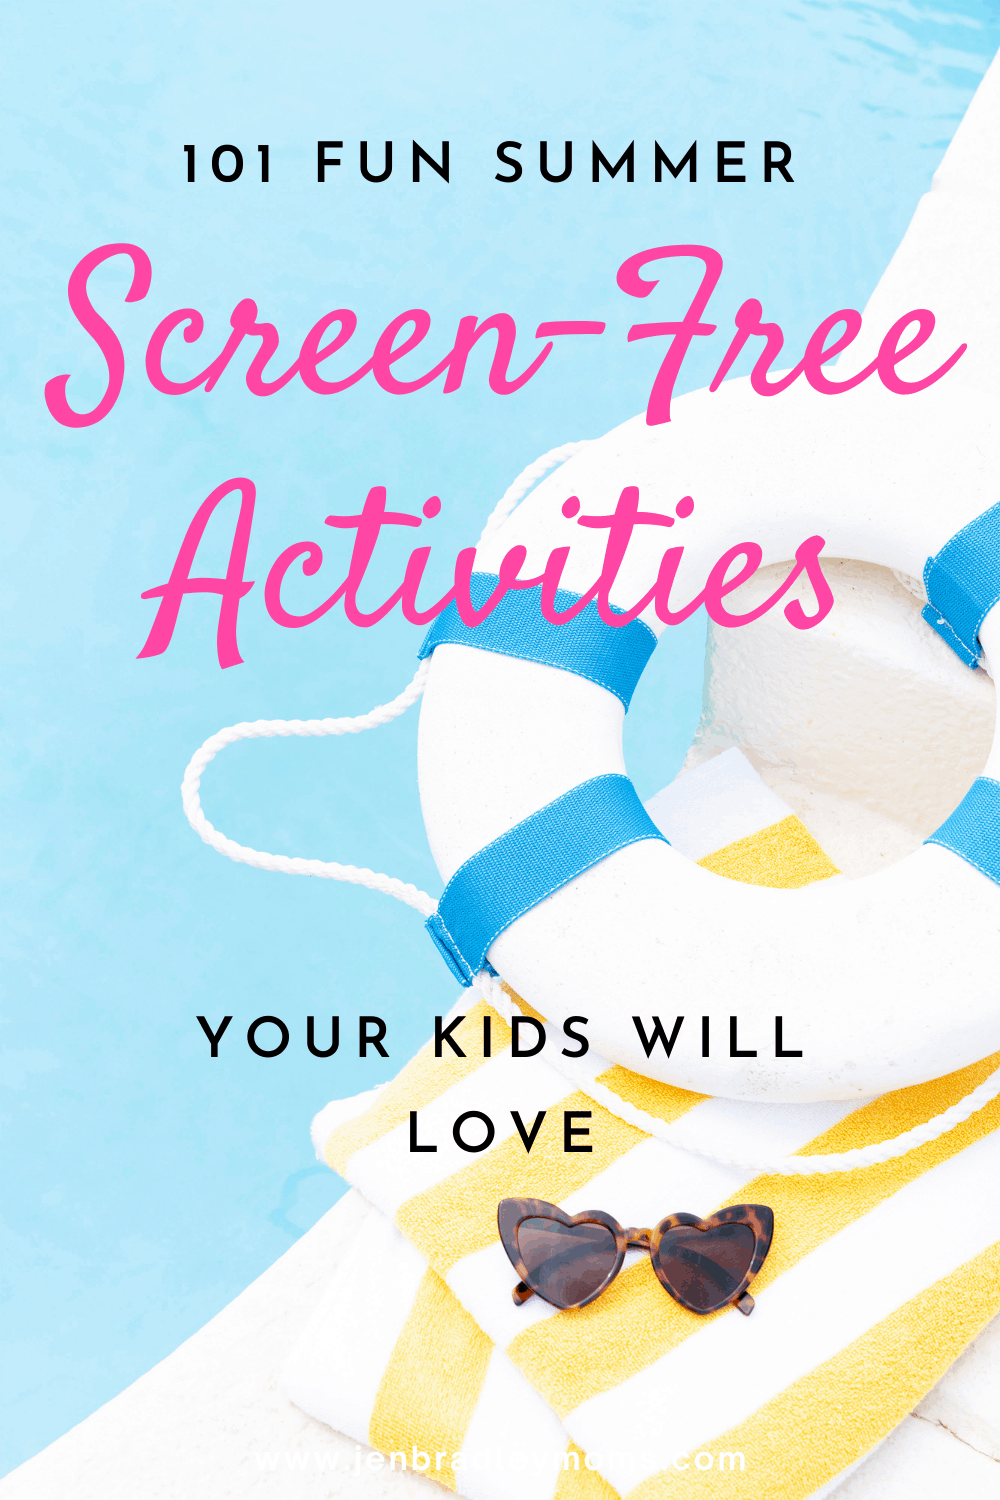 101 Awesome Screen-Free Activities to Do With Your Kids This Summer